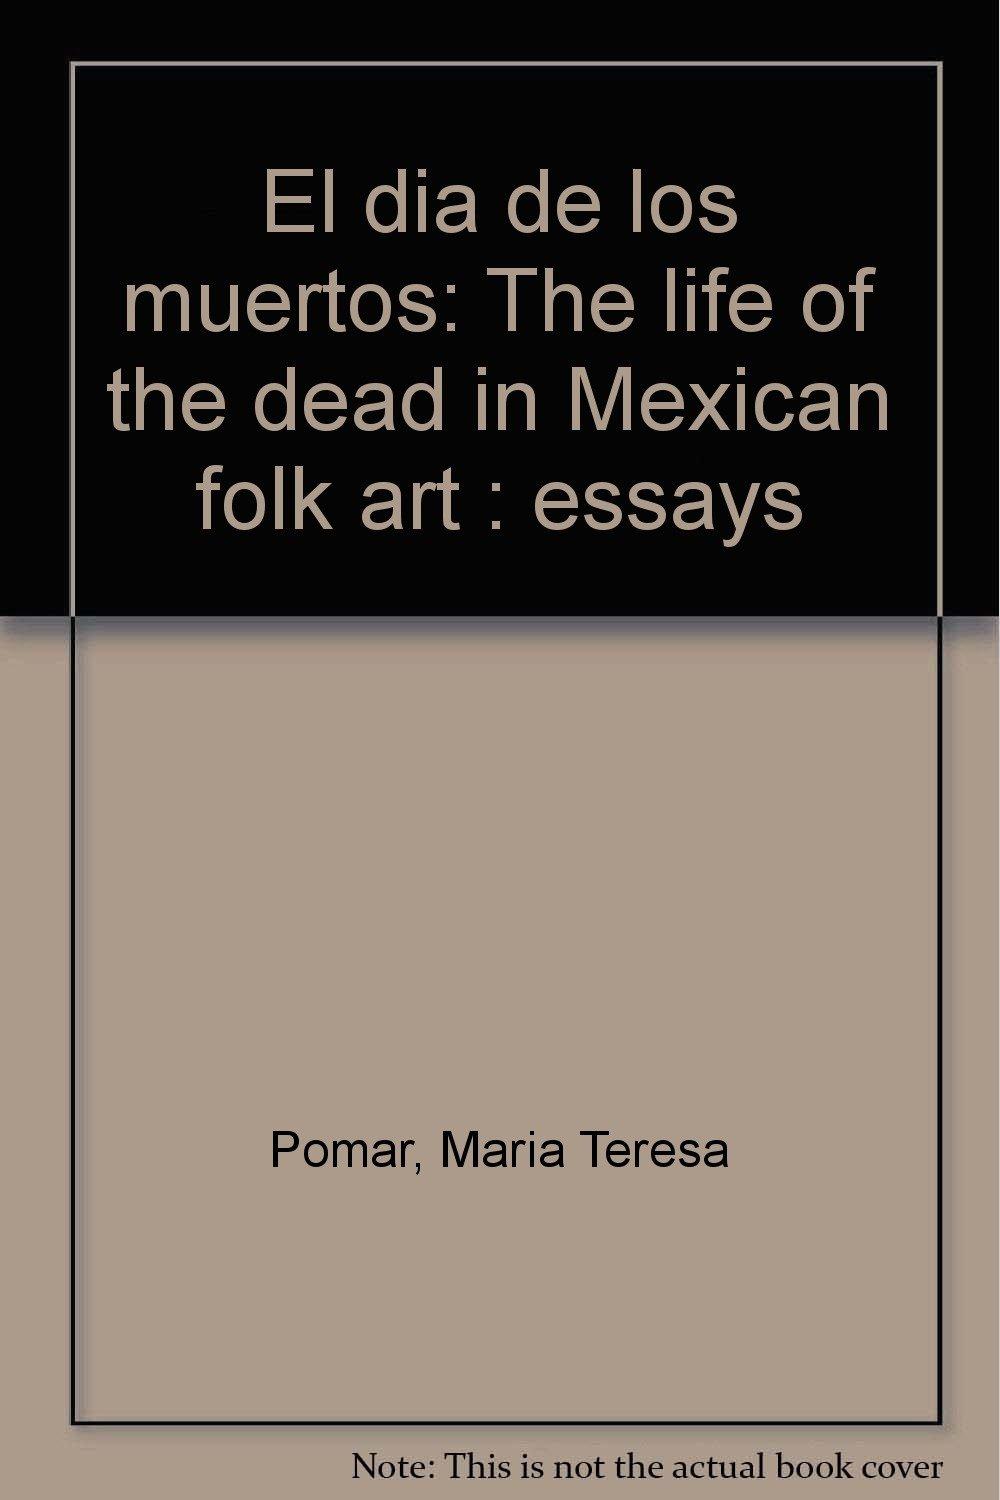 El Dia De Los Muertos The Life Of The Dead In Mexican Folk Art  El Dia De Los Muertos The Life Of The Dead In Mexican Folk Art  Essays  Maria Teresa Pomar Amazoncom Books Topics Of Essays For High School Students also Write My Papre  Do My Assey